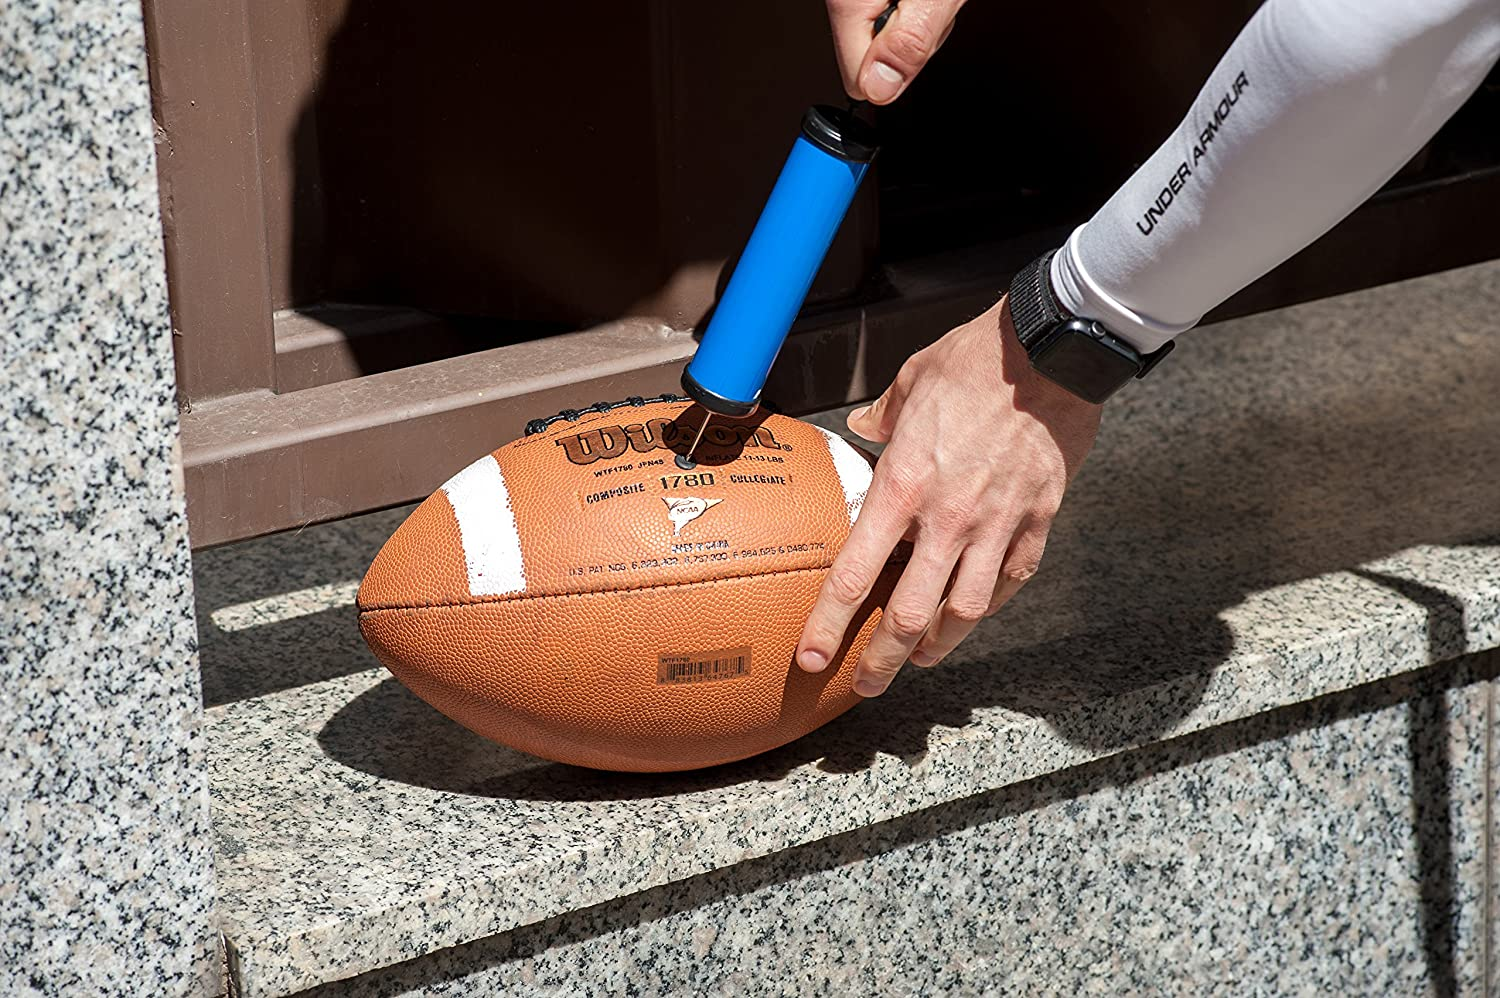 FAST INFLATING HAND AIR PUMP NEEDLE BALL FOOTBALL TOY SPORTS FREE 10PK NEEDLE